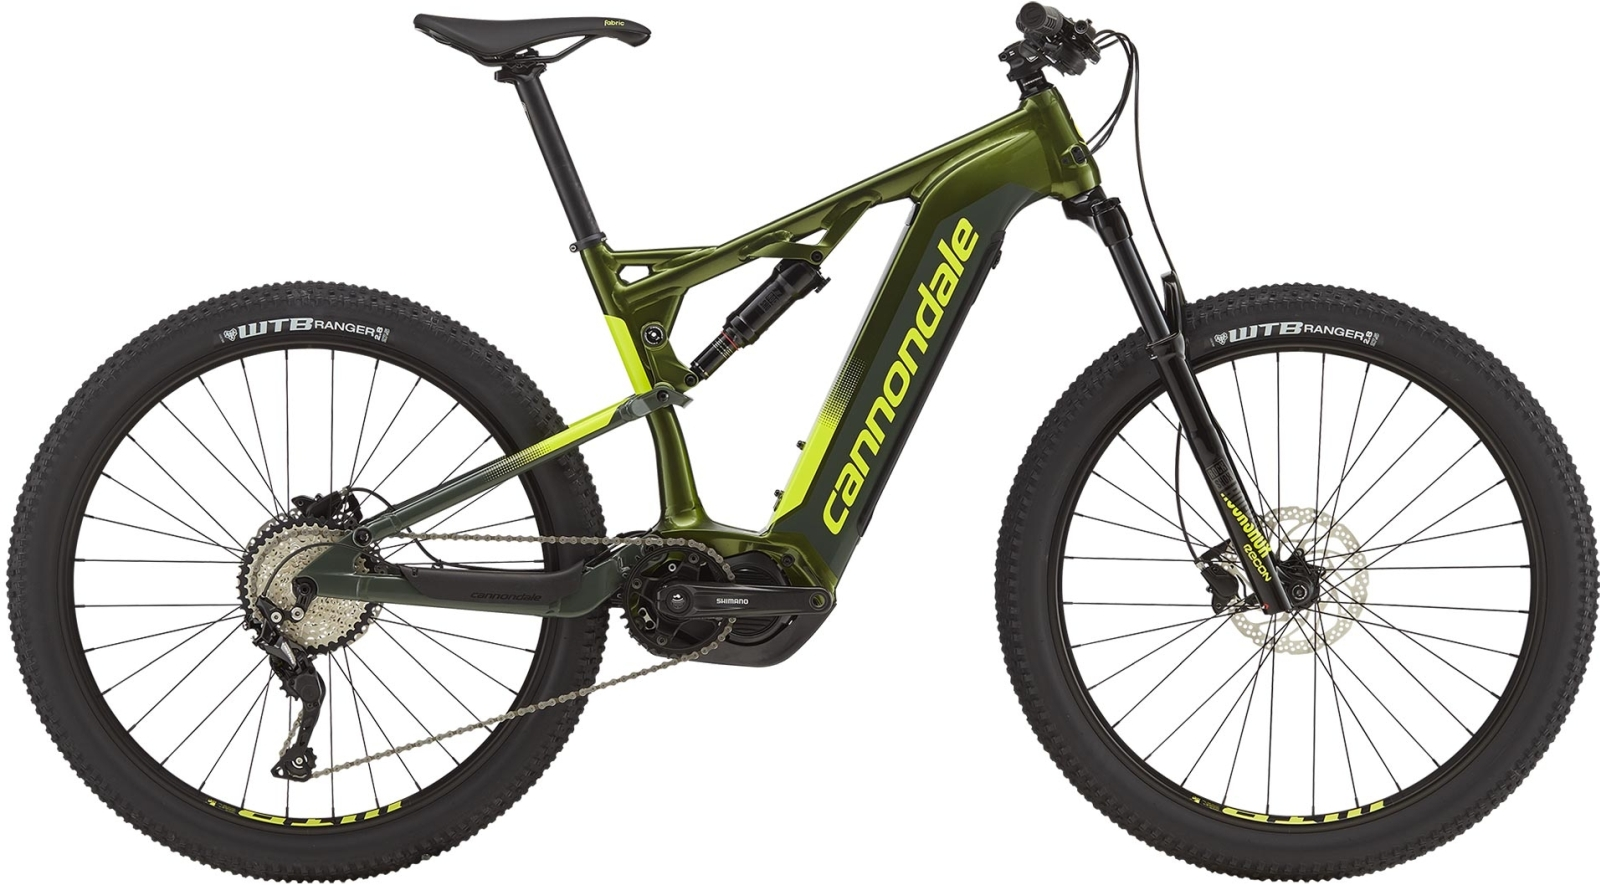 aafd0bf2d9a22 Cannondale Cujo Neo 130 4 - Vulcan w  Green Clay and Volt - Gloss (